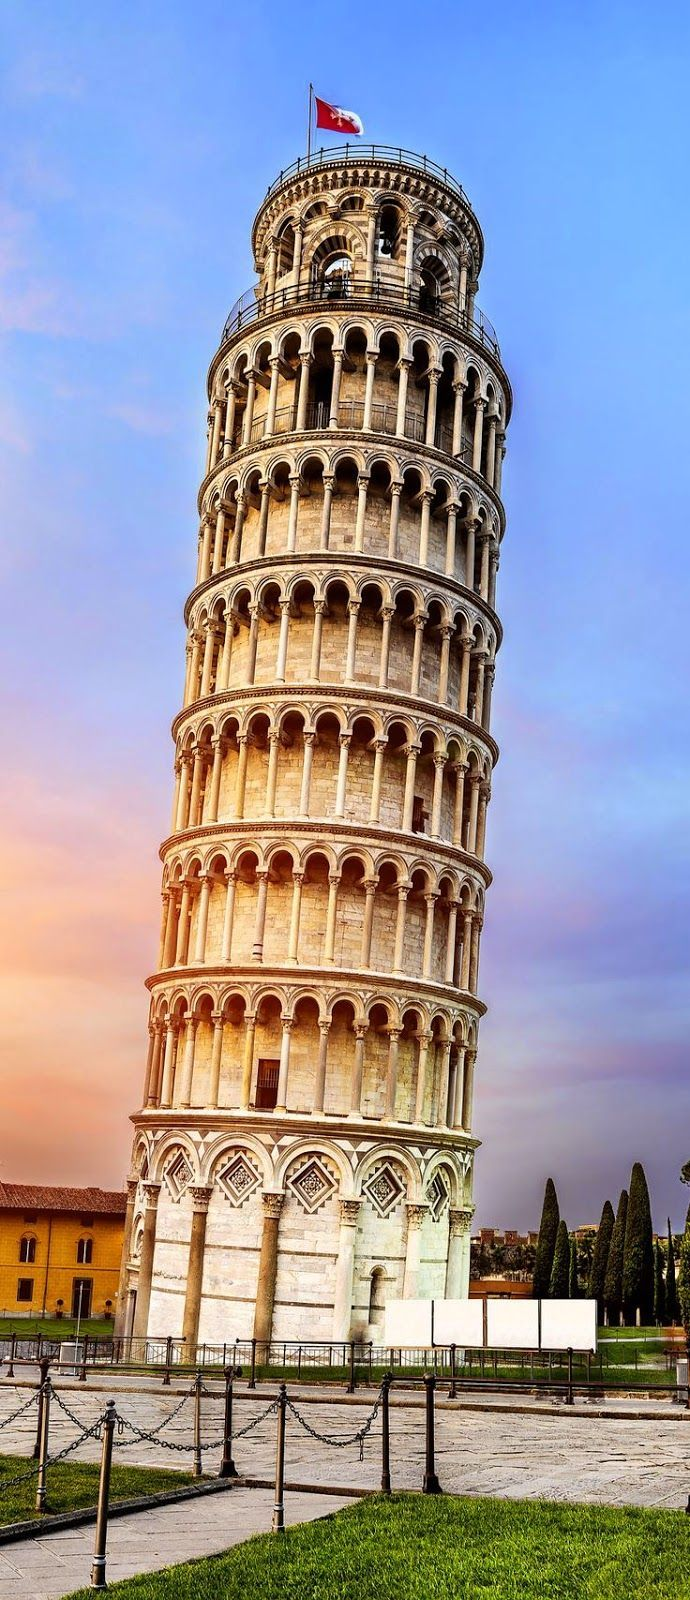 Pisa, place of miracles: The leaning tower. Tuscany, Italy